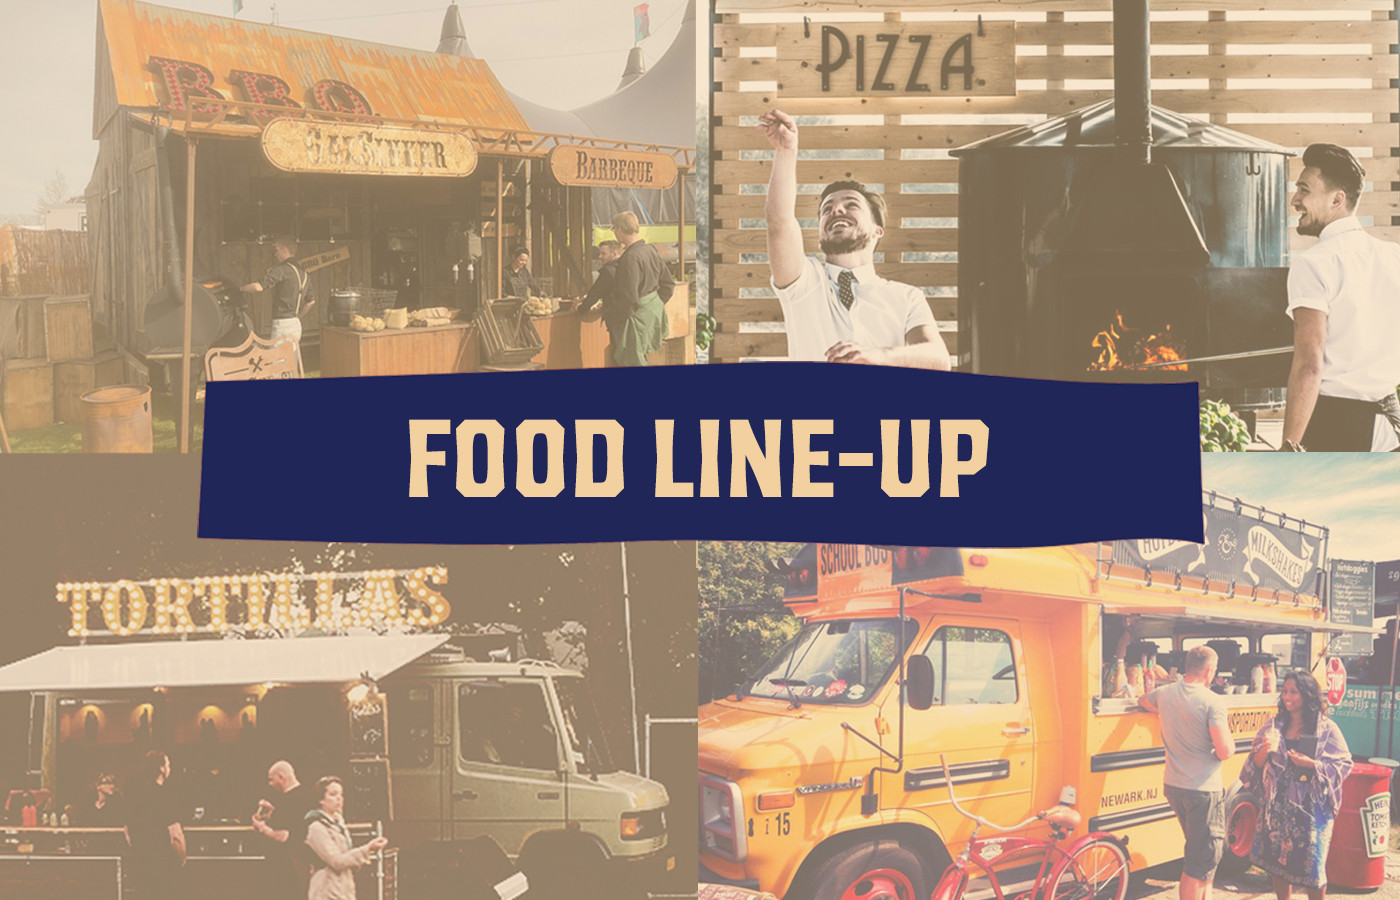 De food line-up van OIABM 2018 is bekend